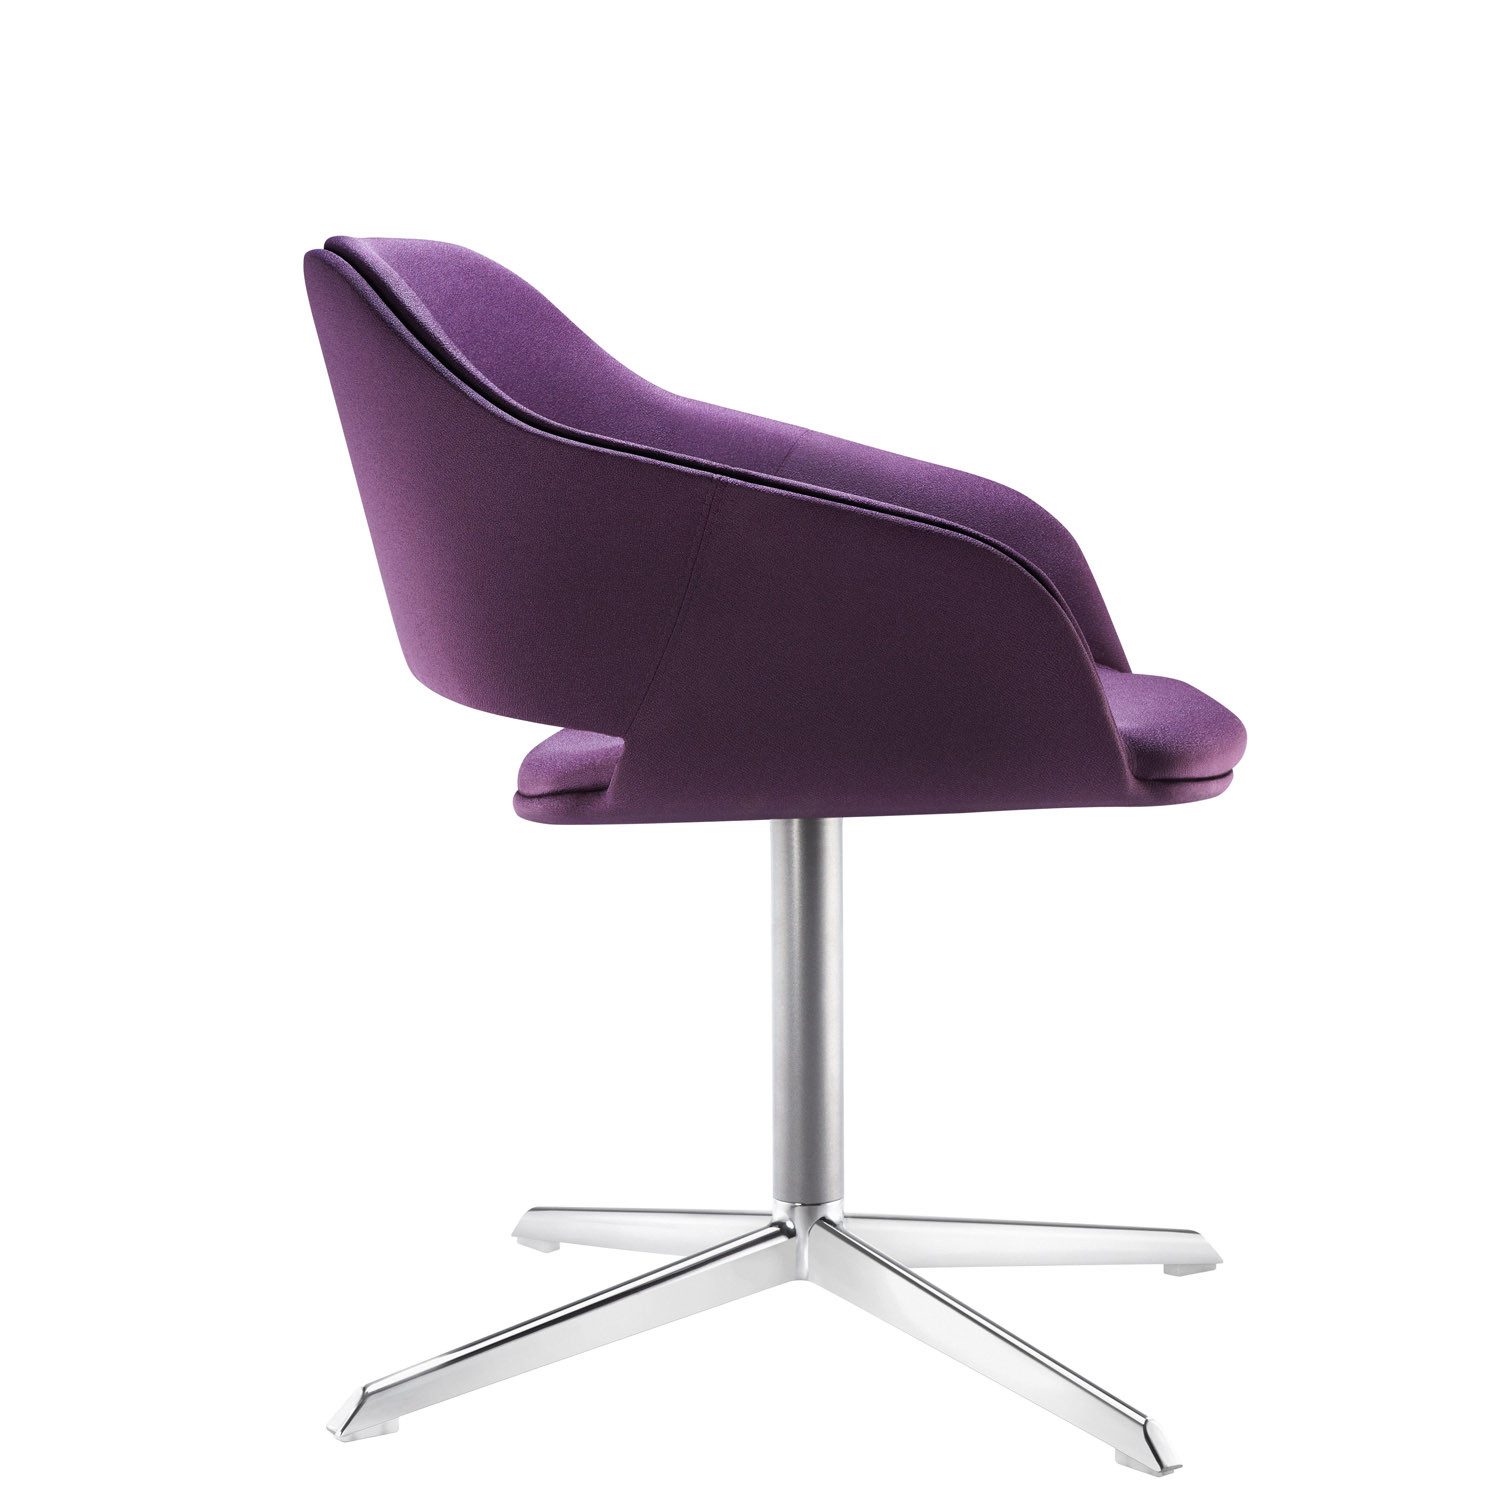 Halo Upholstered Swivel Chair